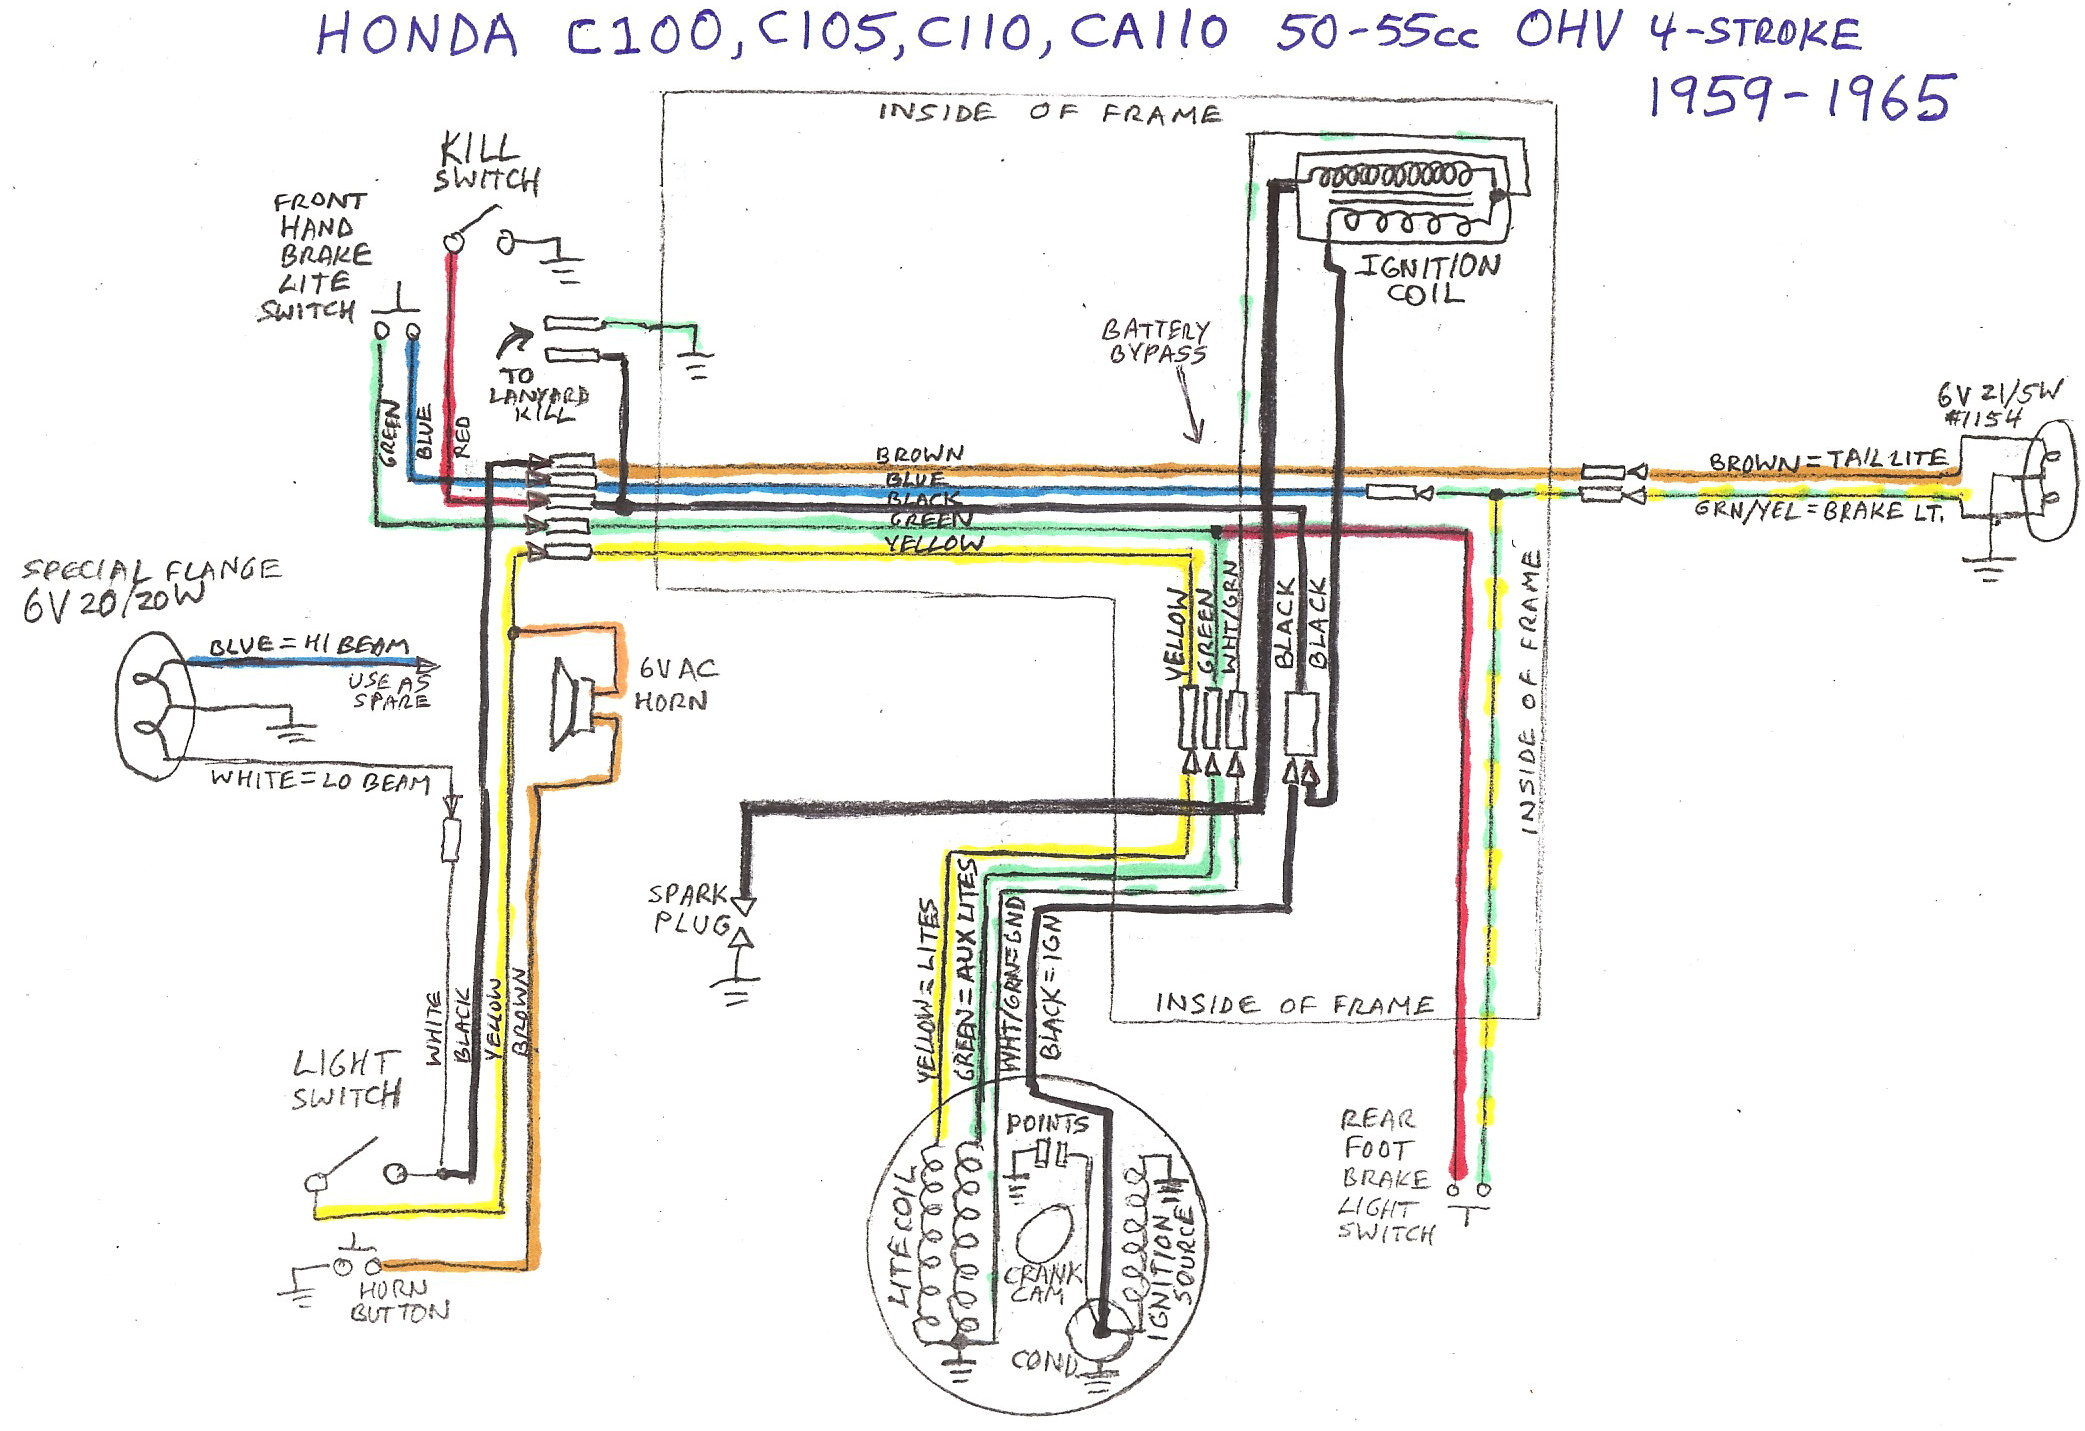 captivating 1971 honda sl70 wiring diagram gallery best Honda Chopper Wiring  Diagram 1971 honda sl70 wiring